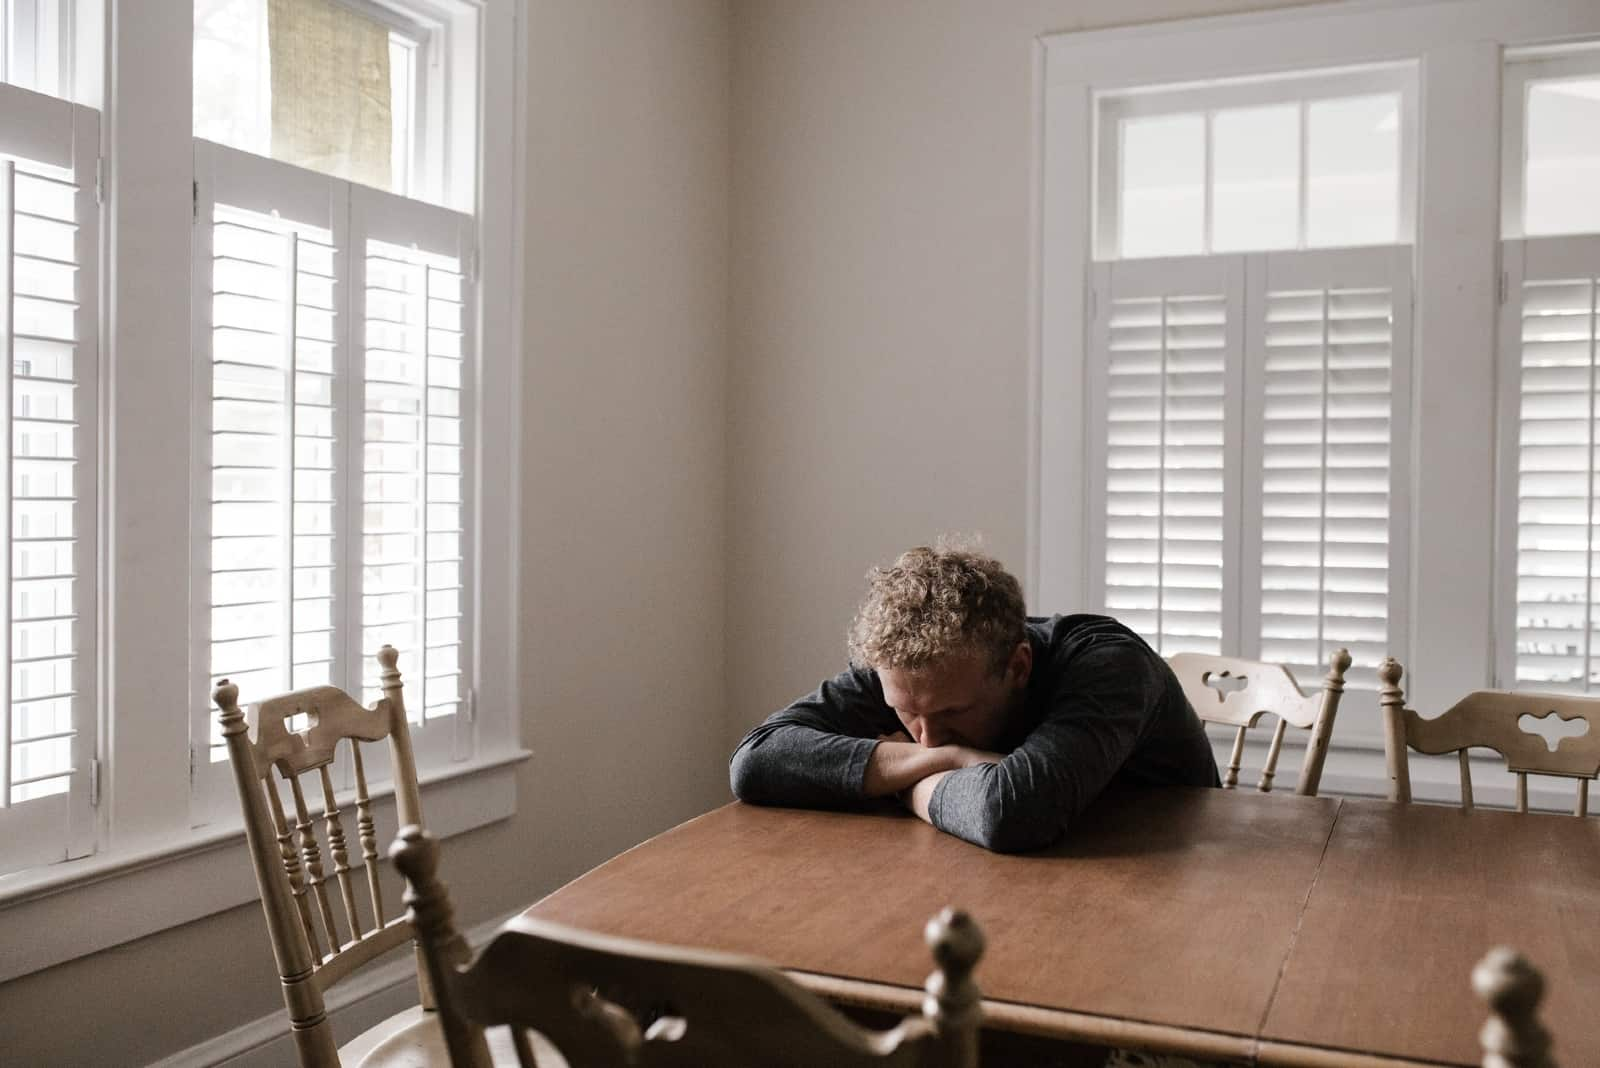 sad man in black top leaning on table